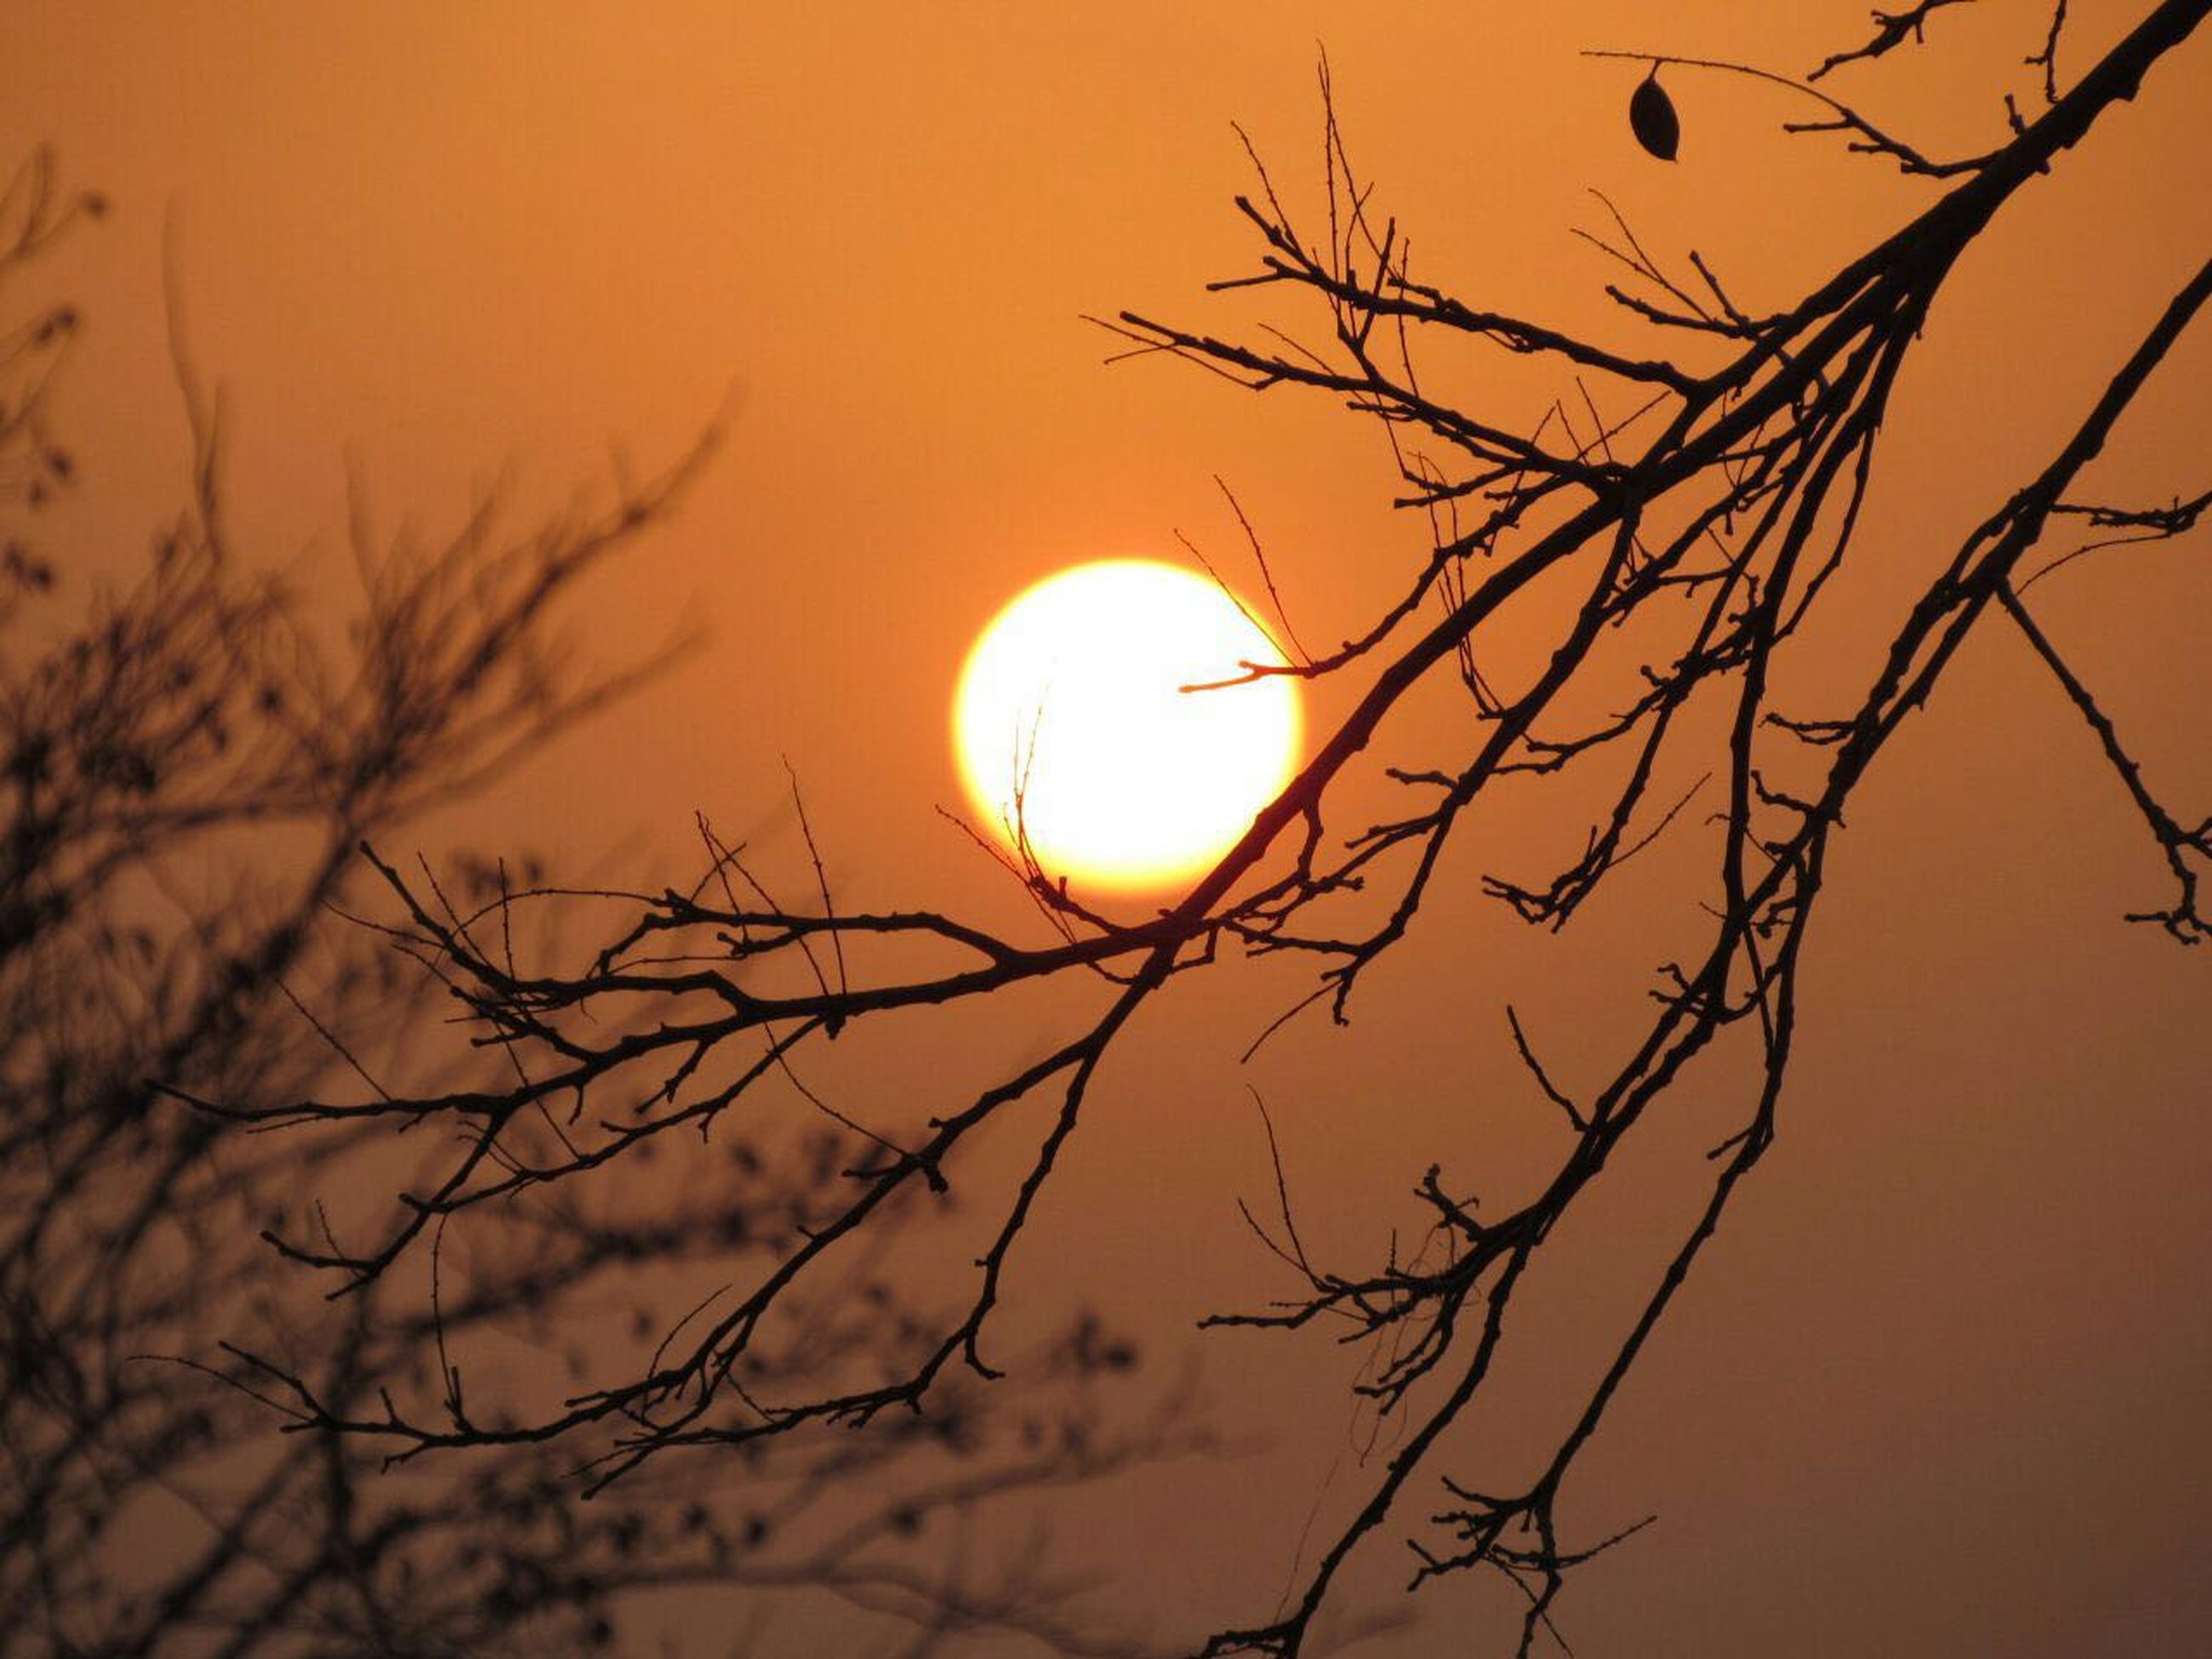 branch, silhouette, scenics, beauty in nature, sun, tranquil scene, tranquility, bare tree, tree, sunset, glowing, idyllic, majestic, nature, low angle view, moon, high section, tree trunk, sky, dramatic sky, outdoors, orange color, atmosphere, circle, planetary moon, dreamlike, atmospheric mood, vibrant color, romantic sky, no people, remote, silence